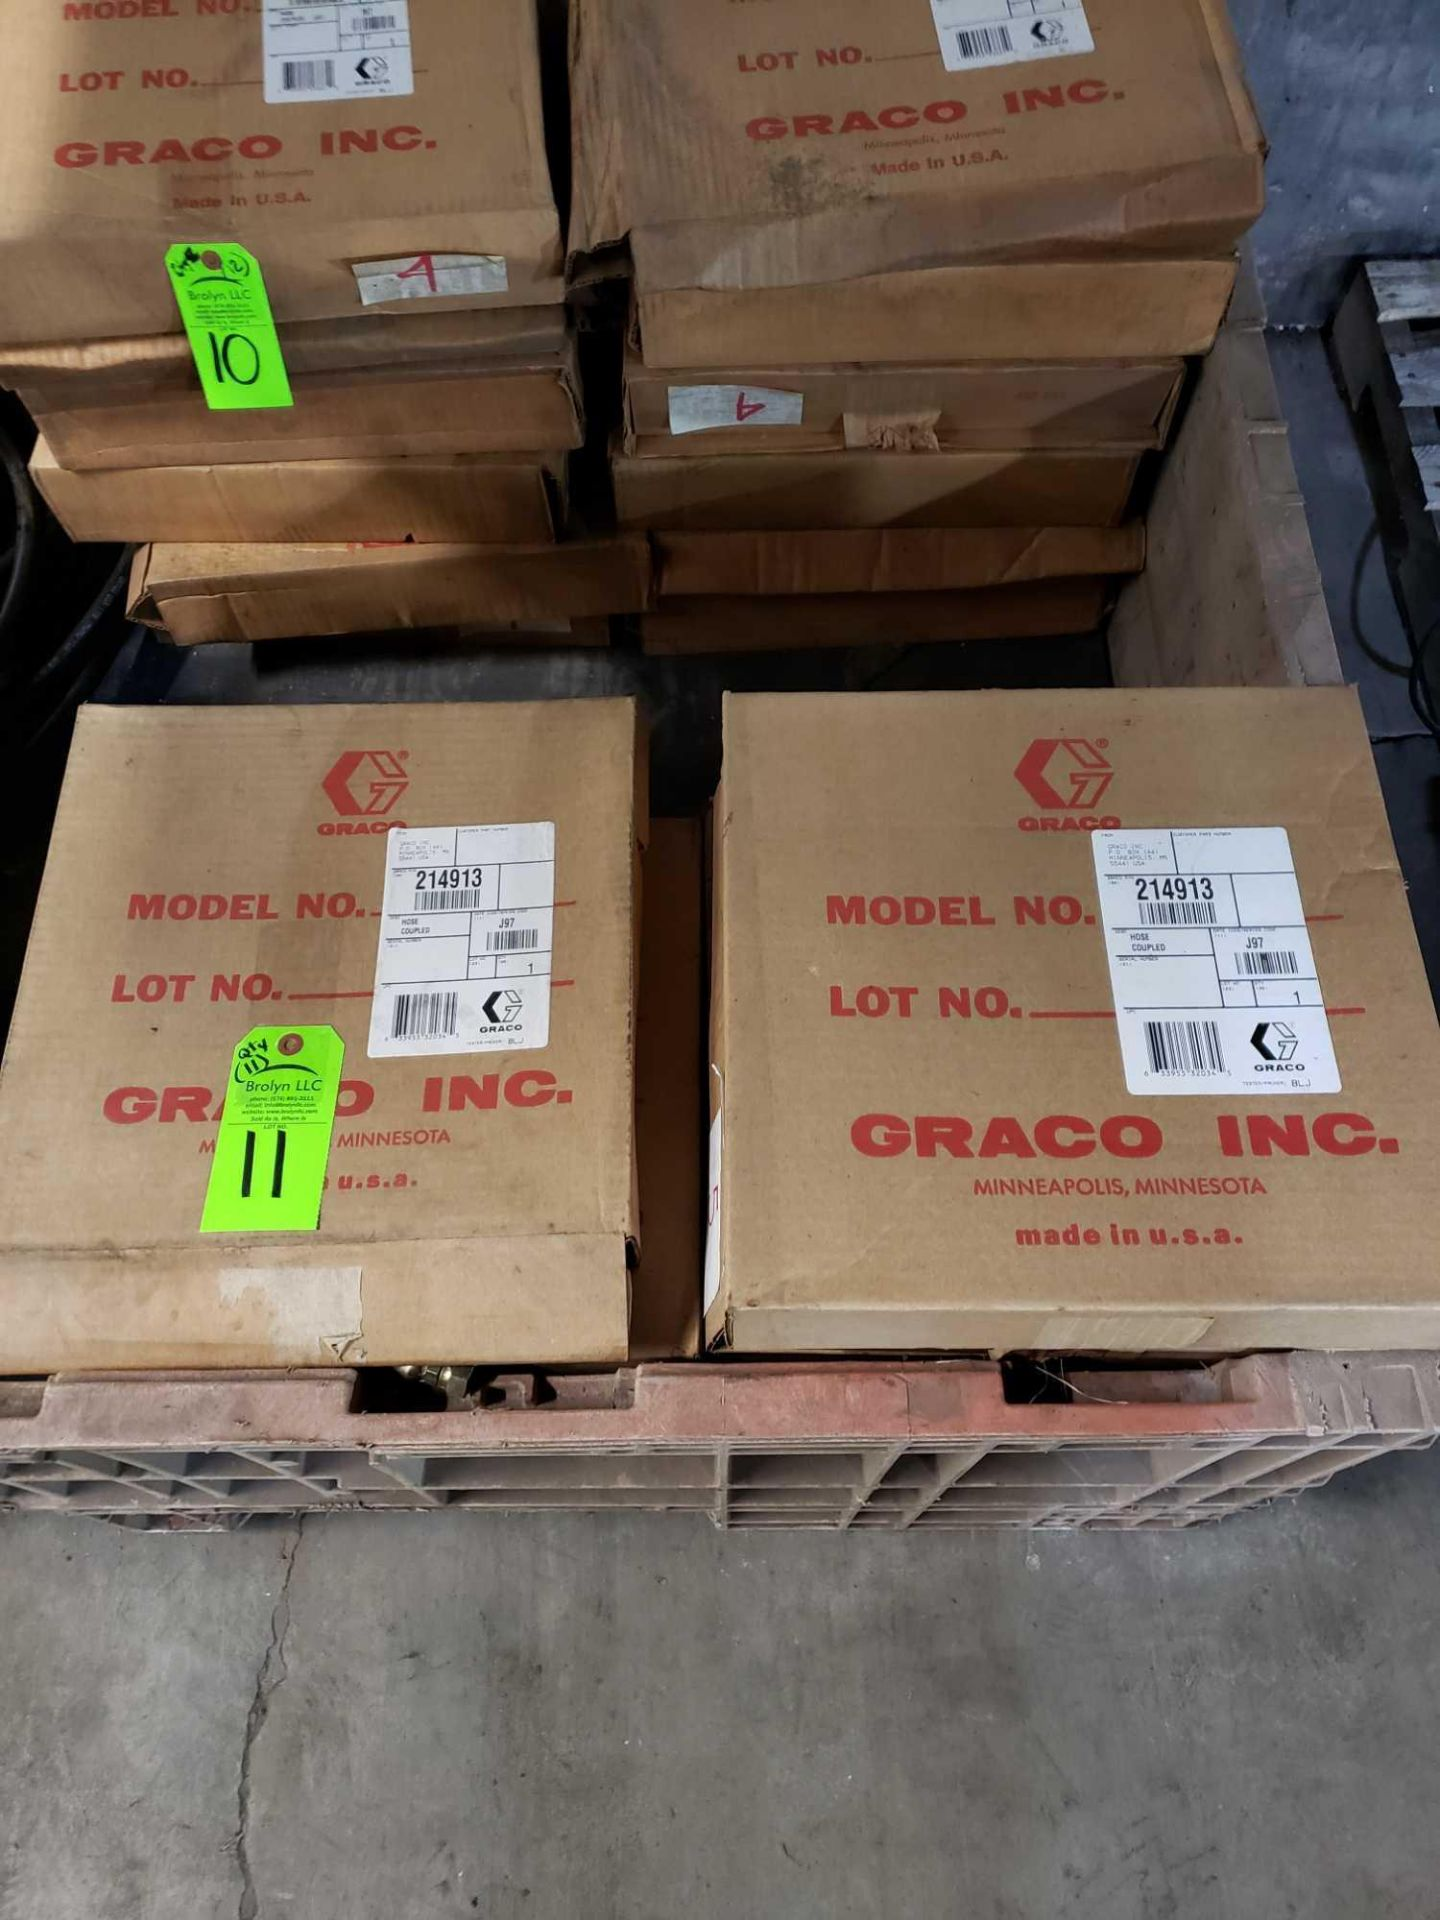 Lot 11 - Qty 11 - Graco model 214913 hoses. New in boxes.